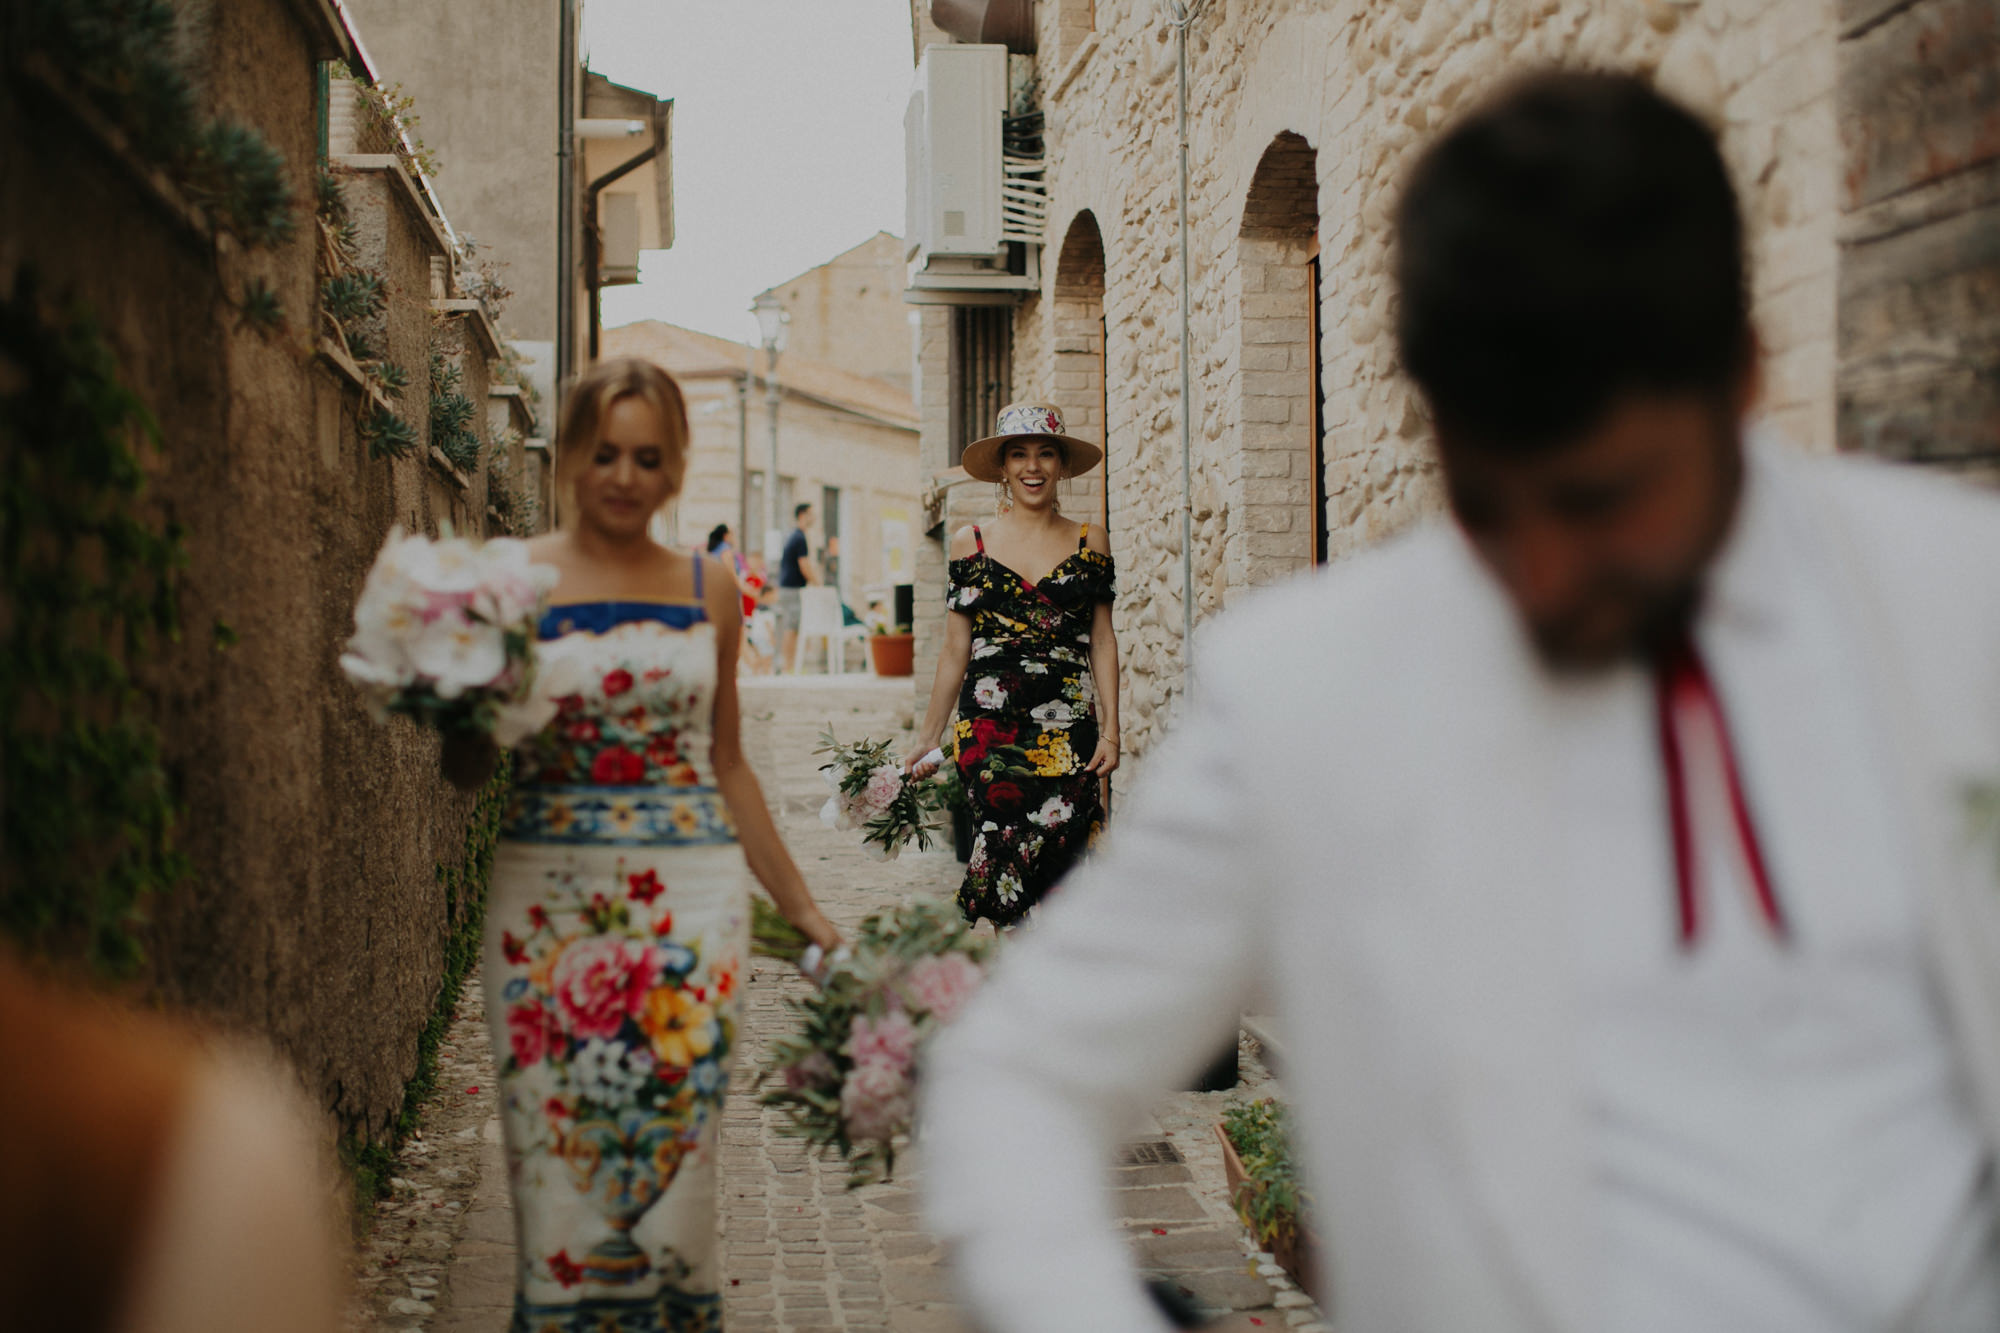 Guests in floral dresses in Mexican street -  photo by Dan O'Day